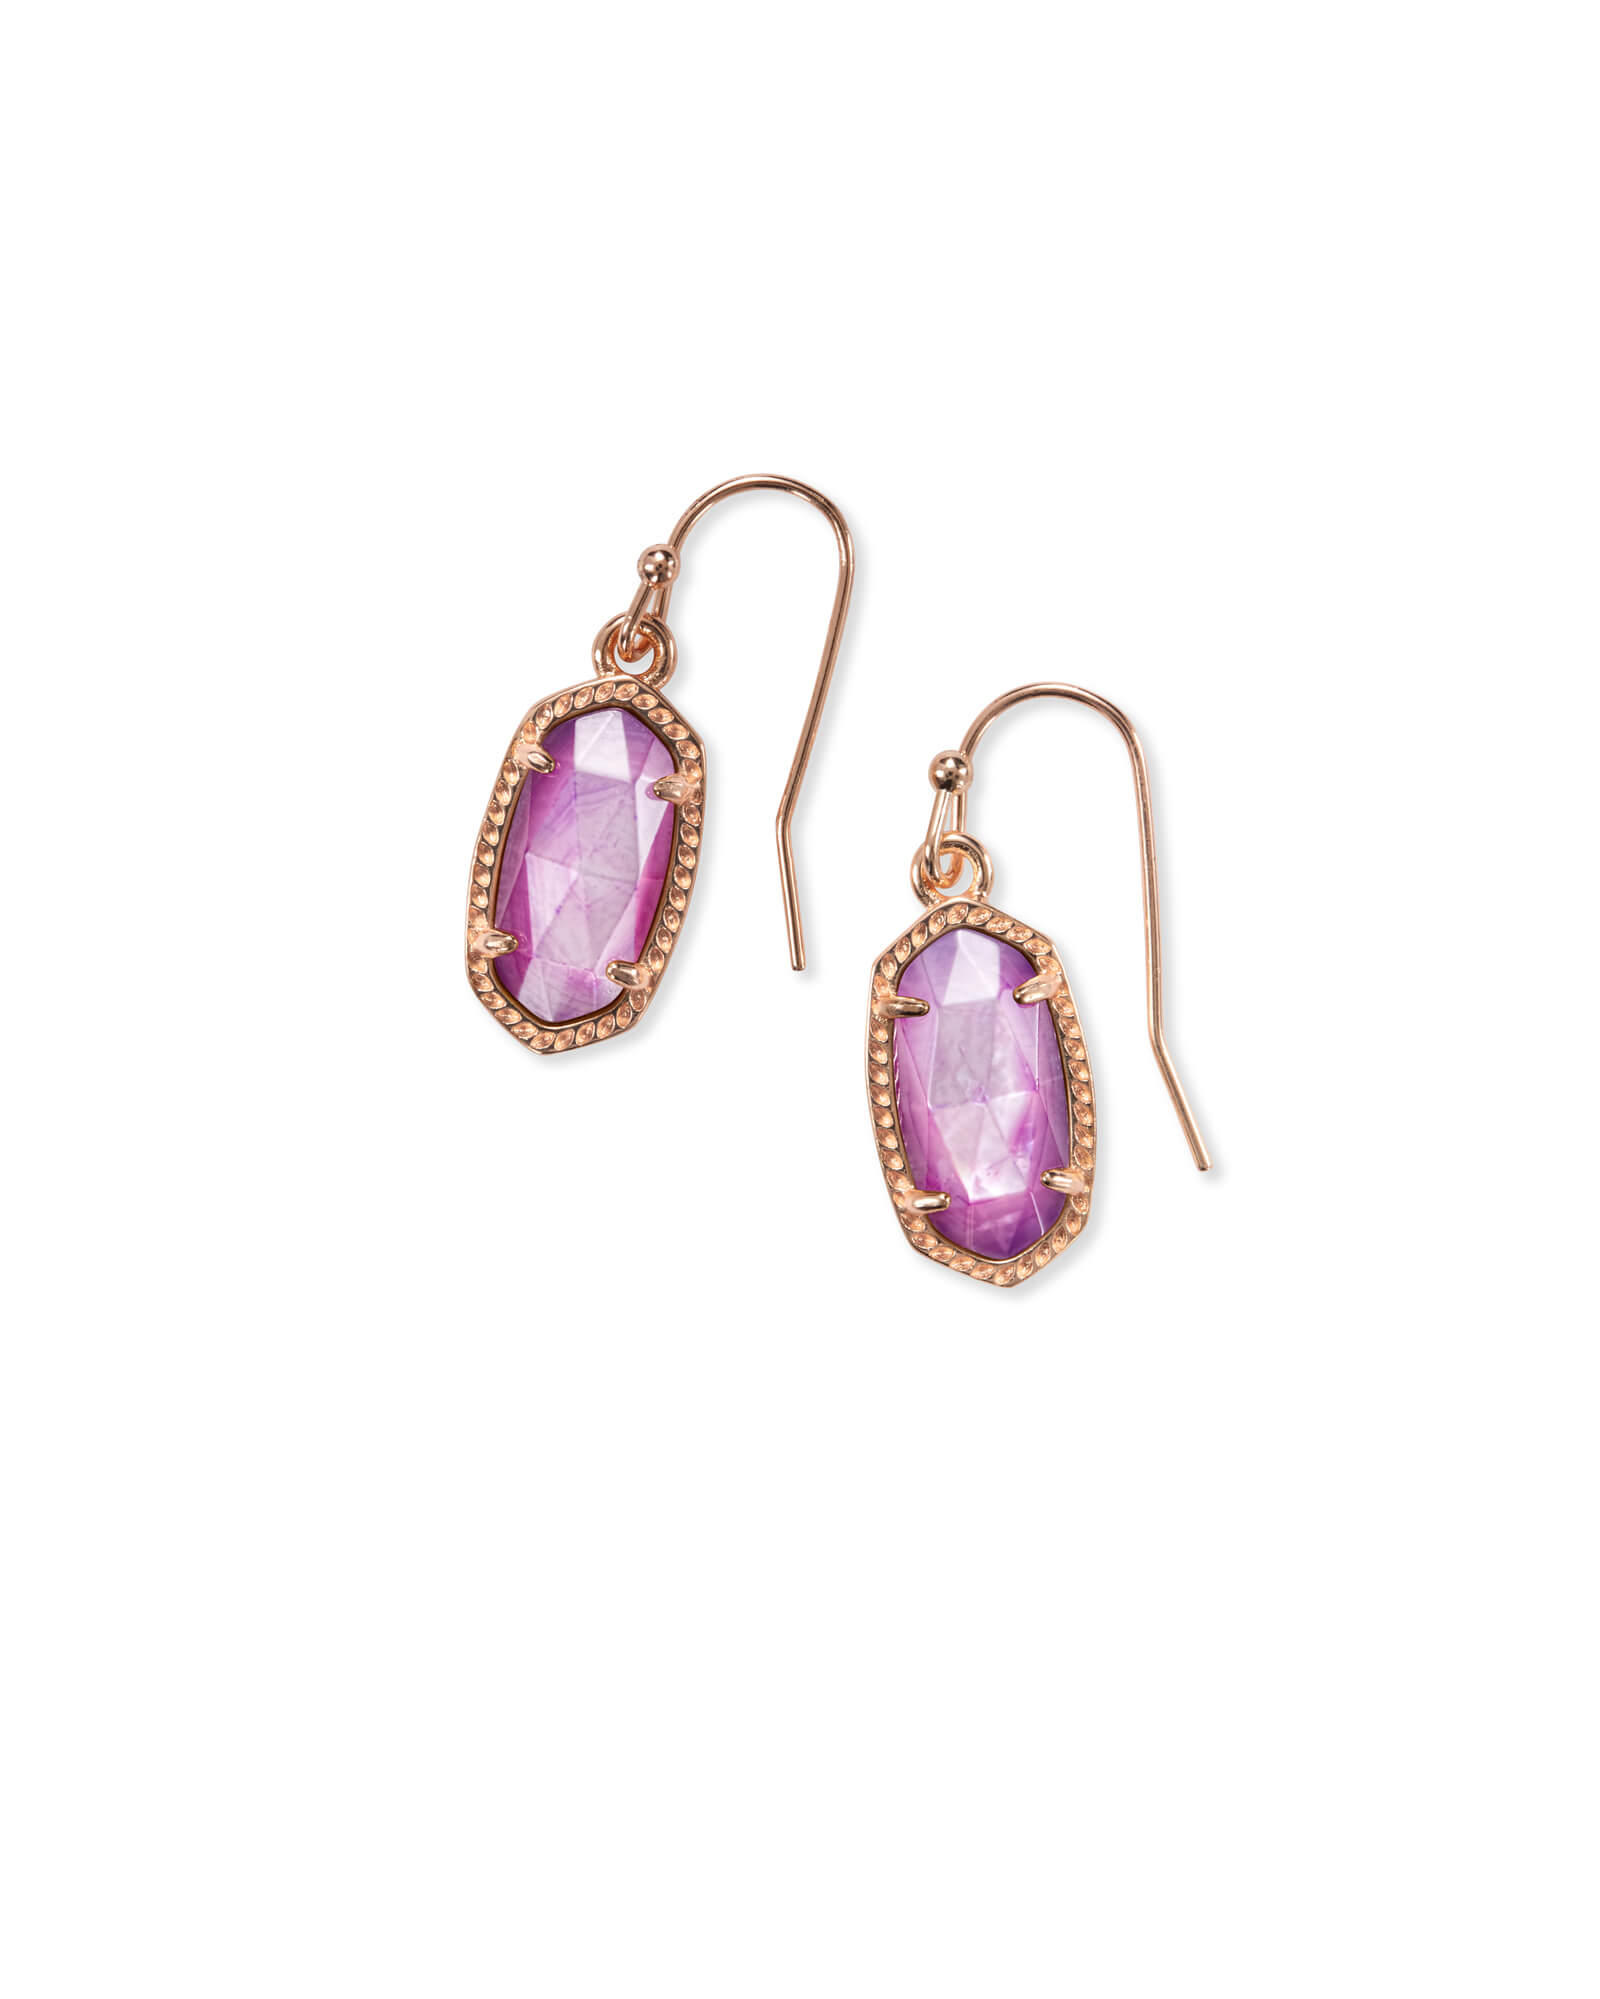 Lee Rose Gold Drop Earrings in Lilac Mother of Pearl